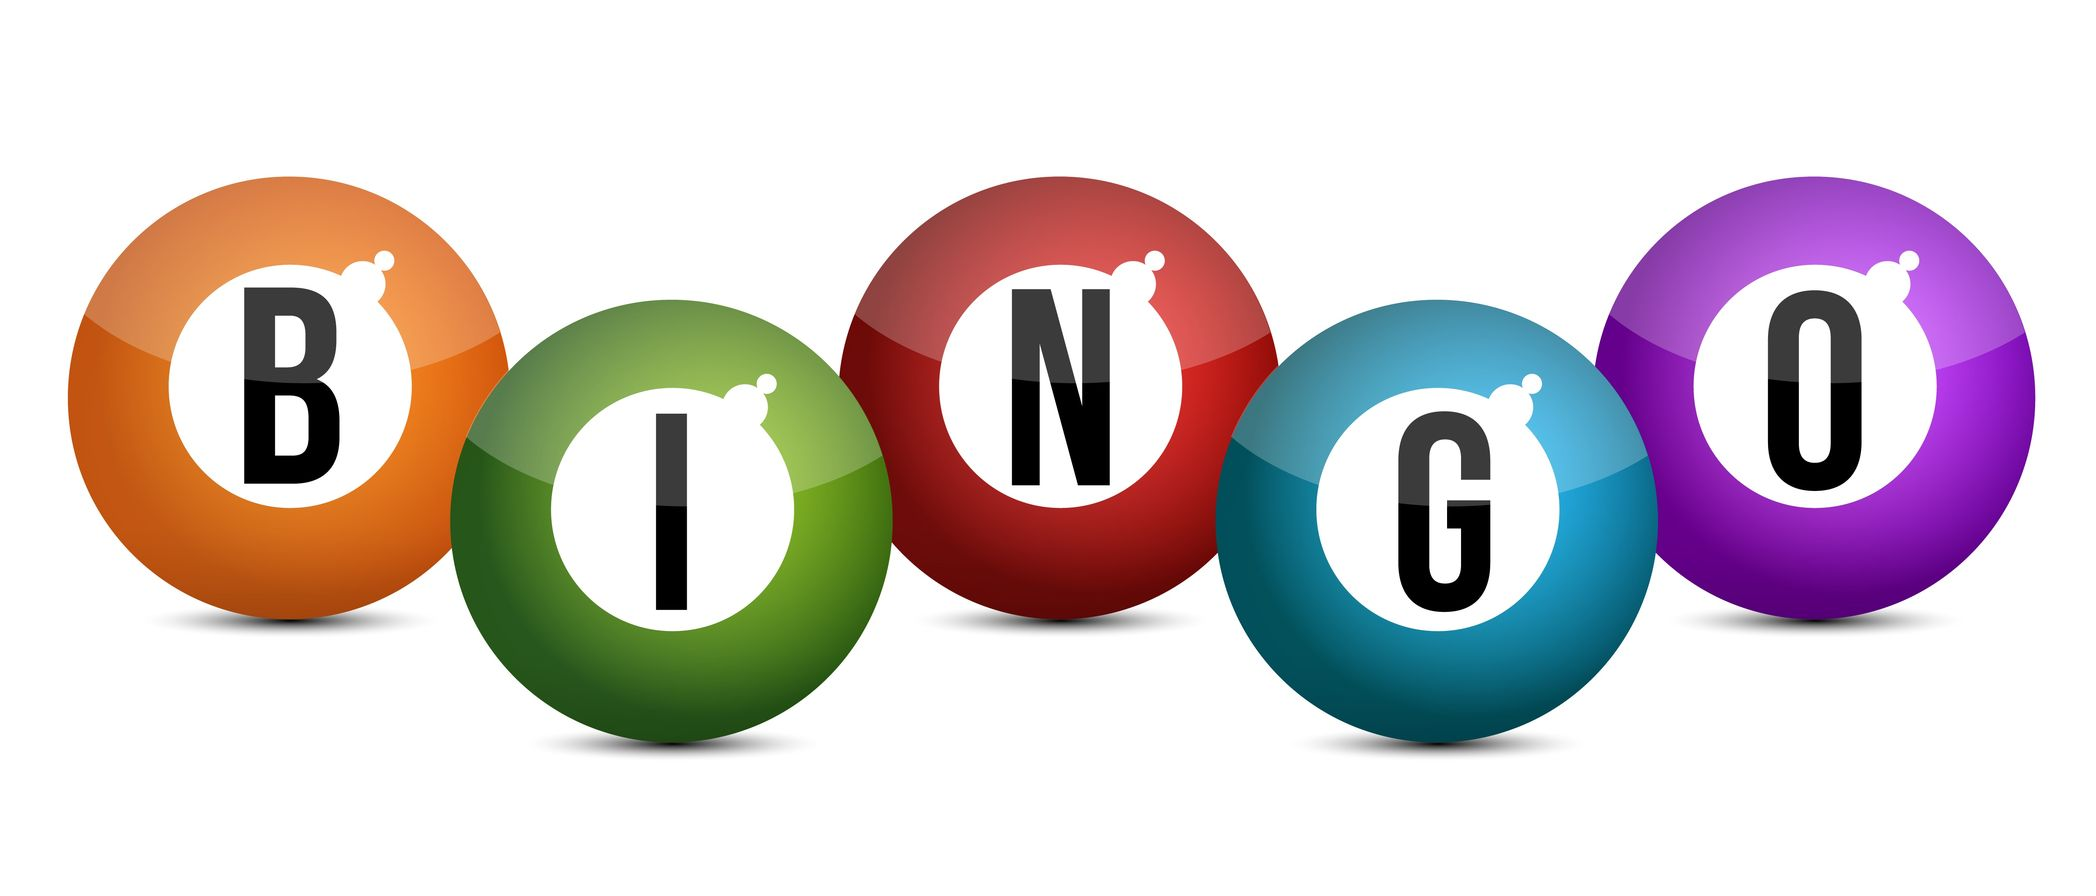 15174556 – brightly coloured bingo balls illustration design